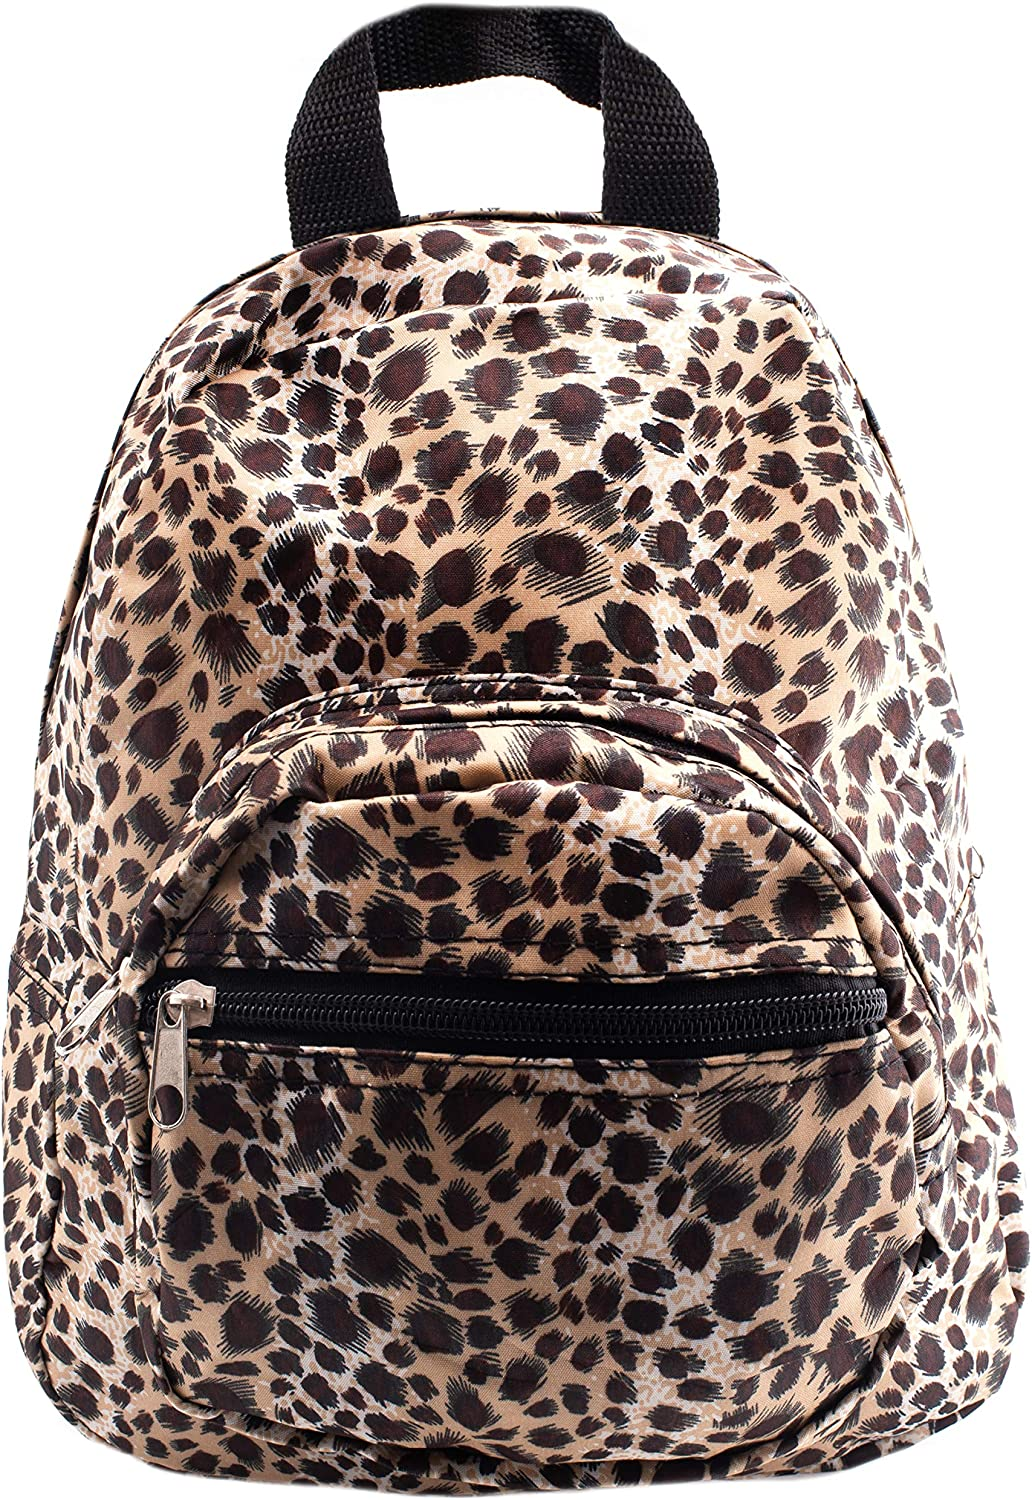 Rave Envy  Mini Backpack  Small Profile, But Plenty of Space Back Packs  Great Daypack (Leopard)